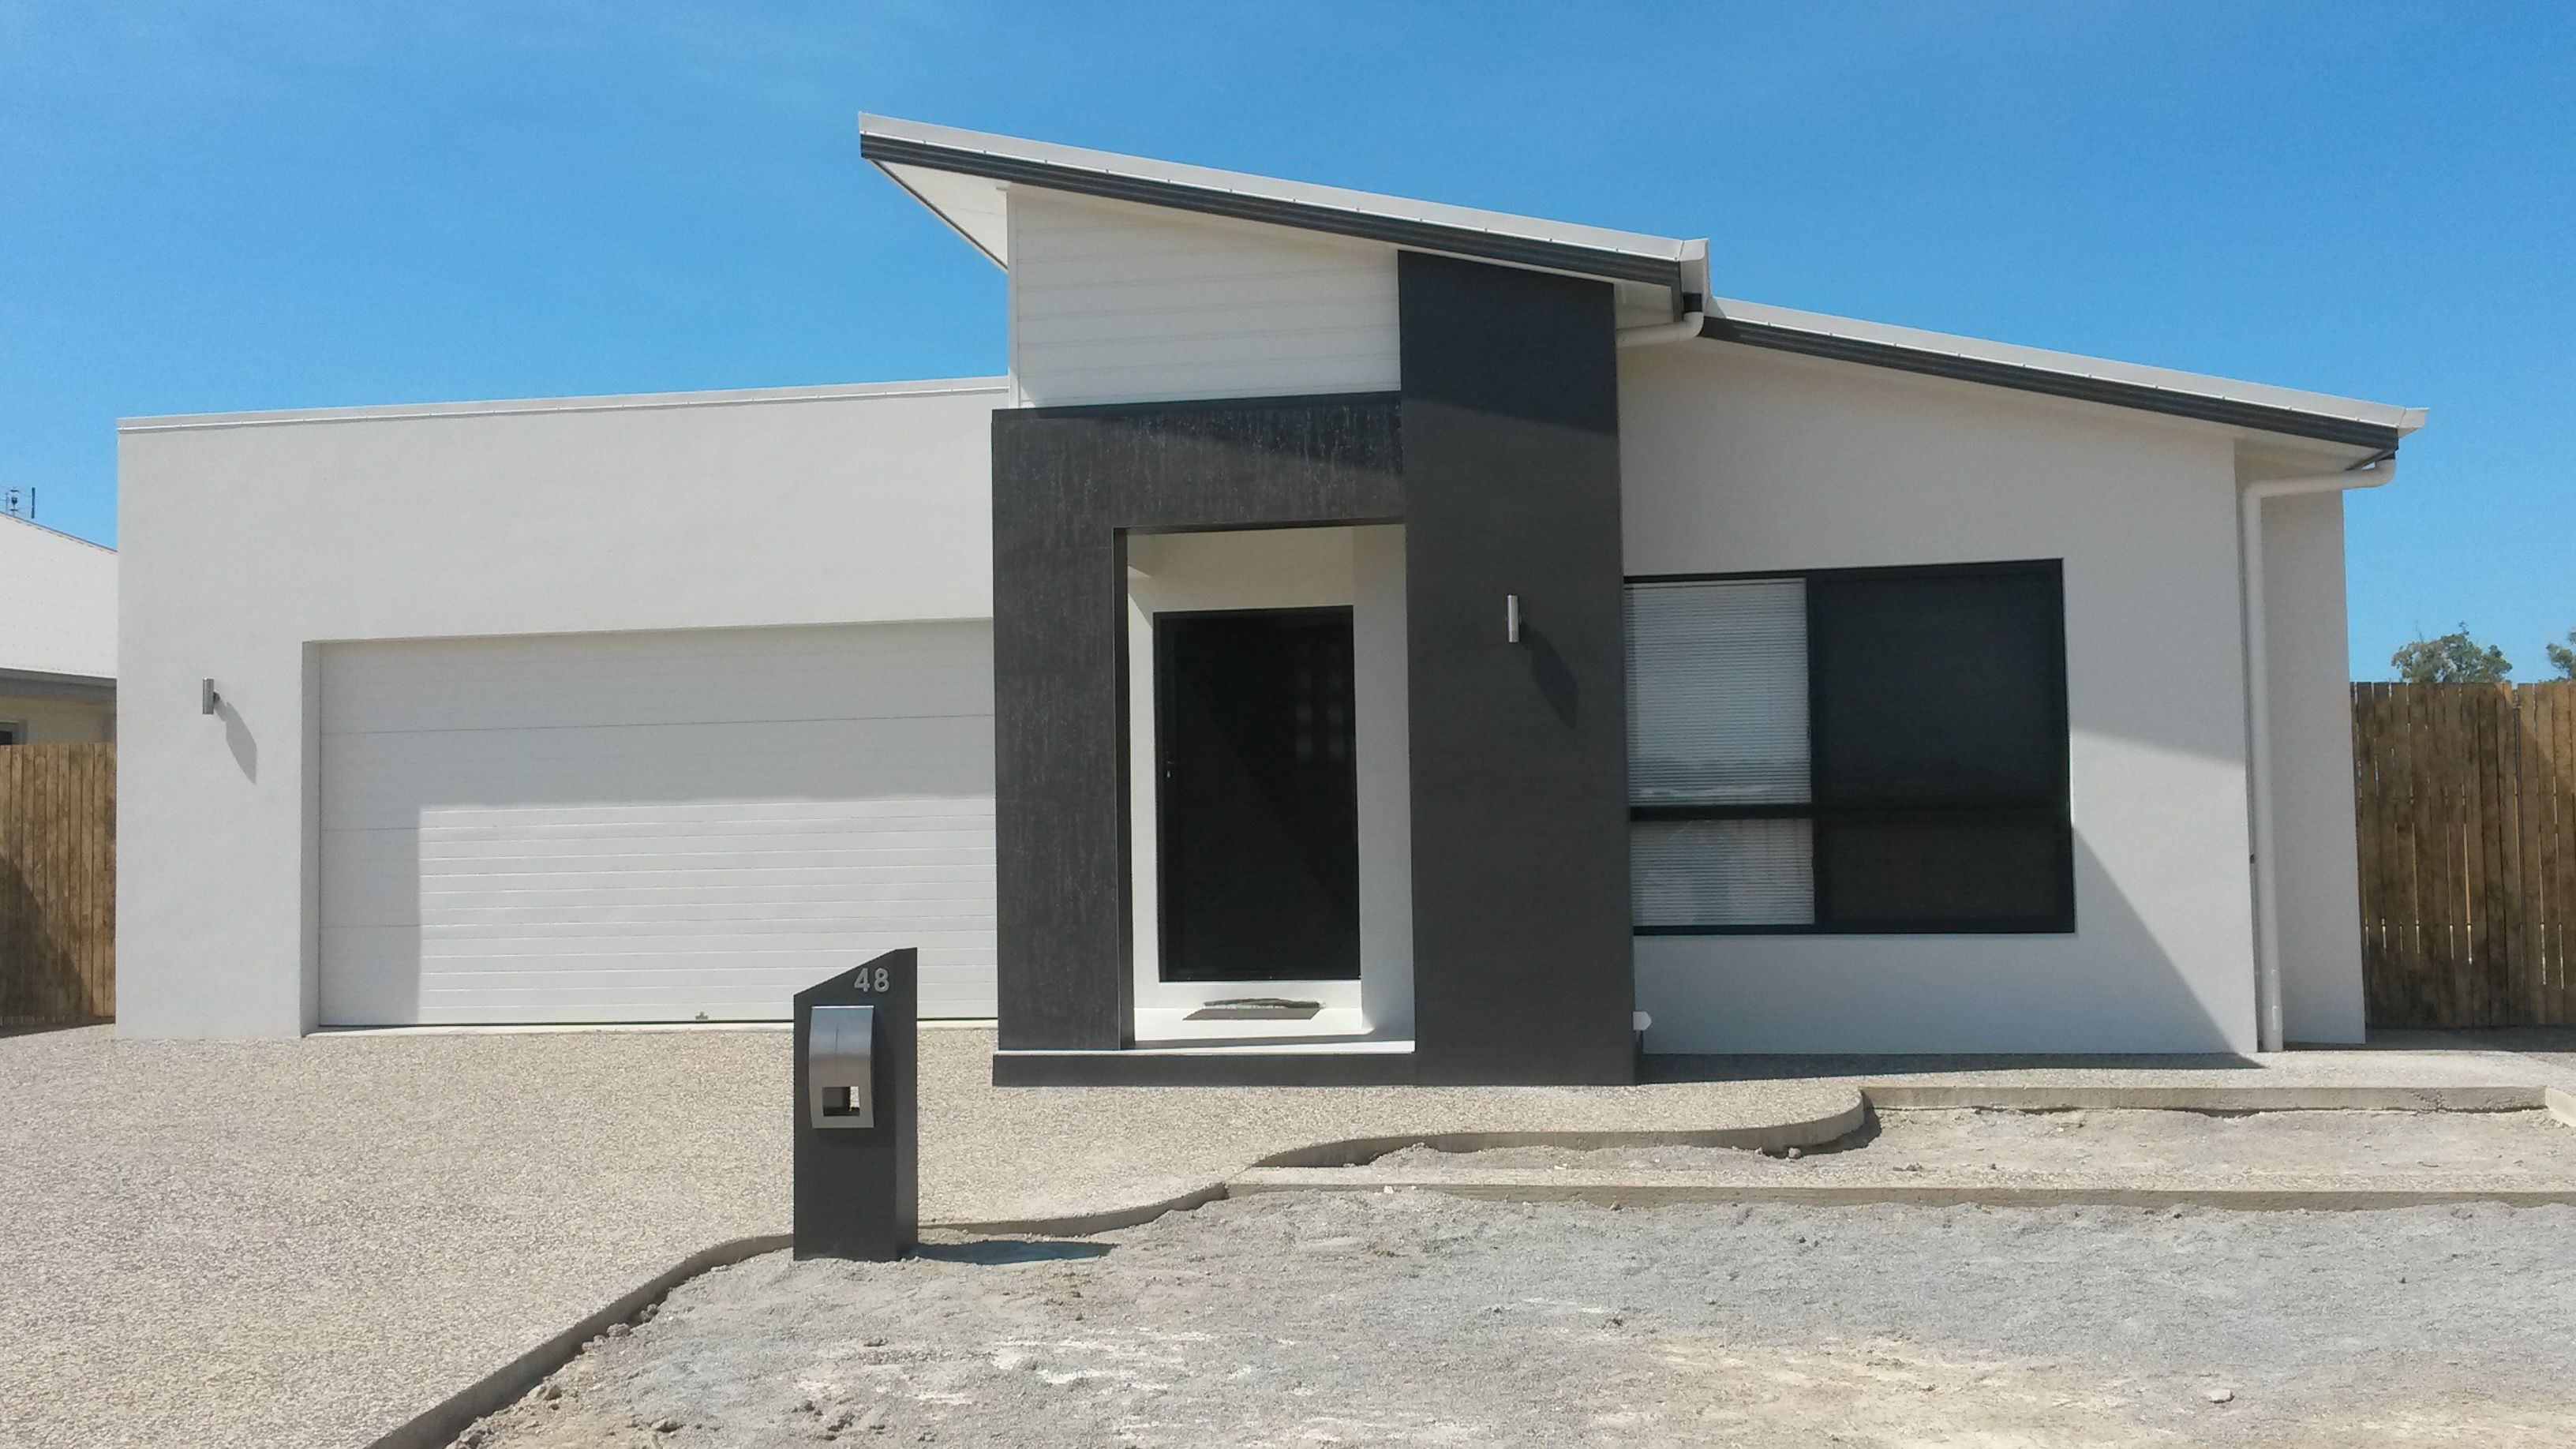 New House Facade With Skillion Roof Charcoal Grey And White